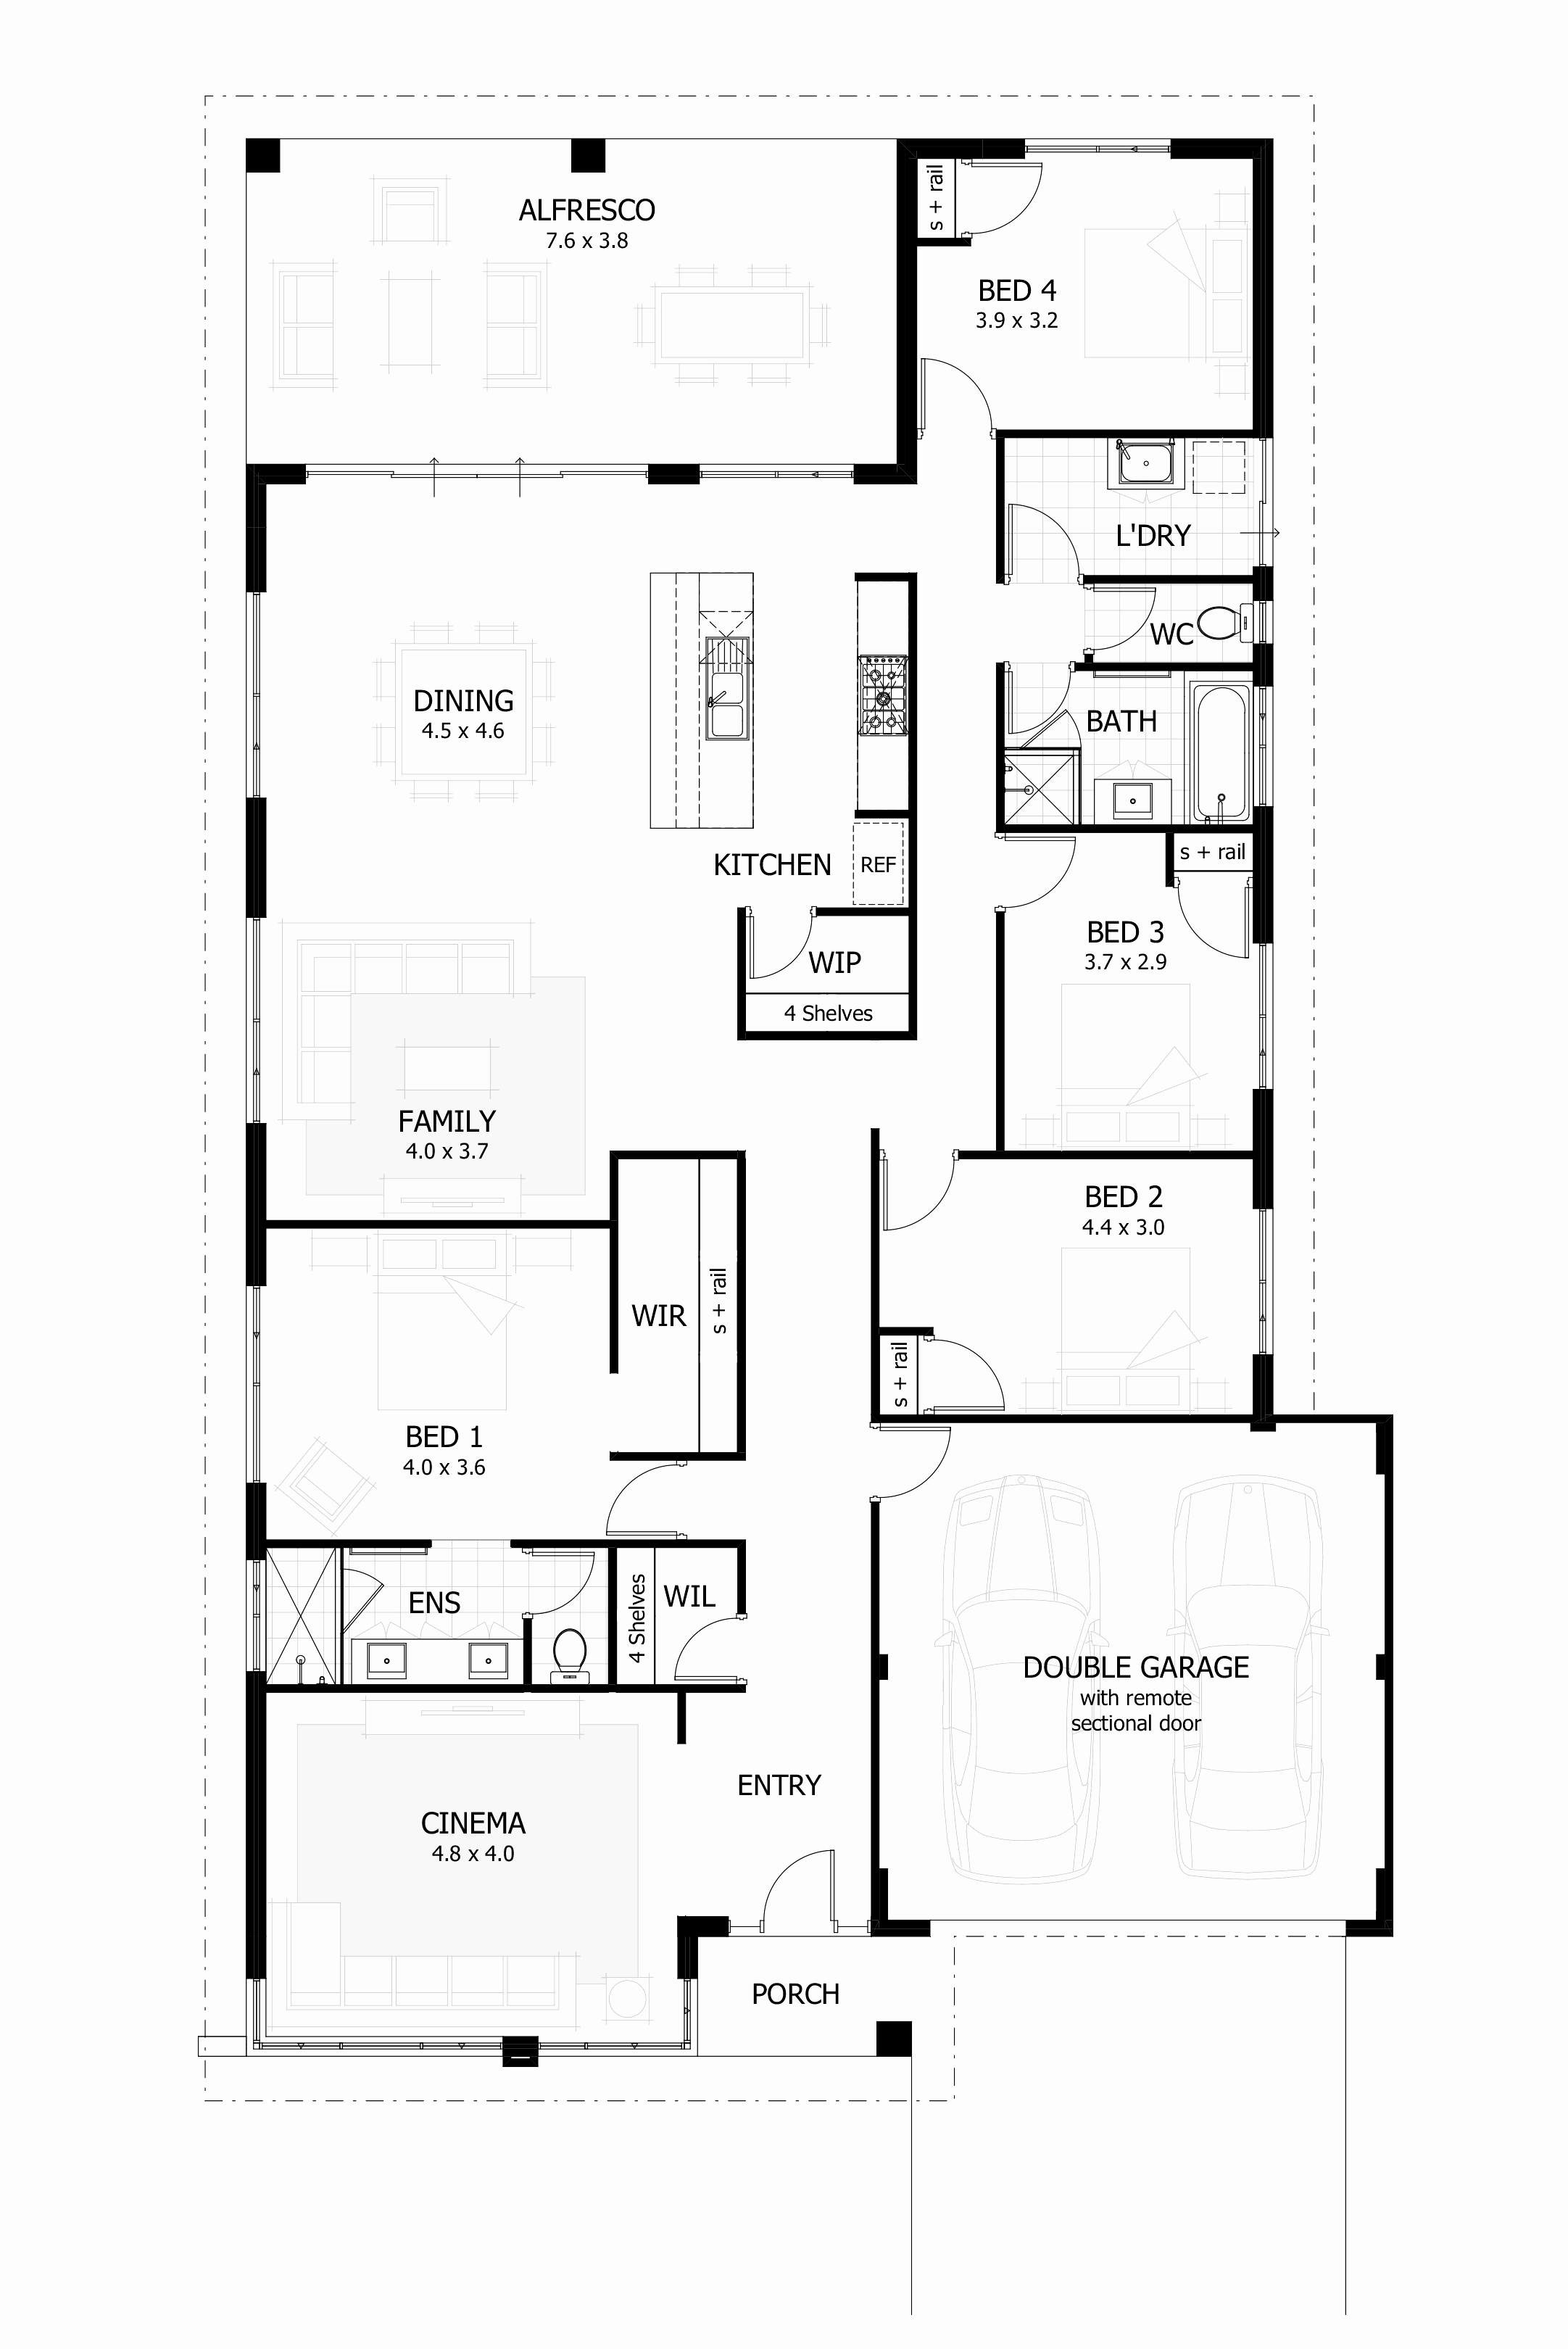 beautiful 4 bedroom house plans pdf free unique 3 bedroom house plans with regard to house plans free